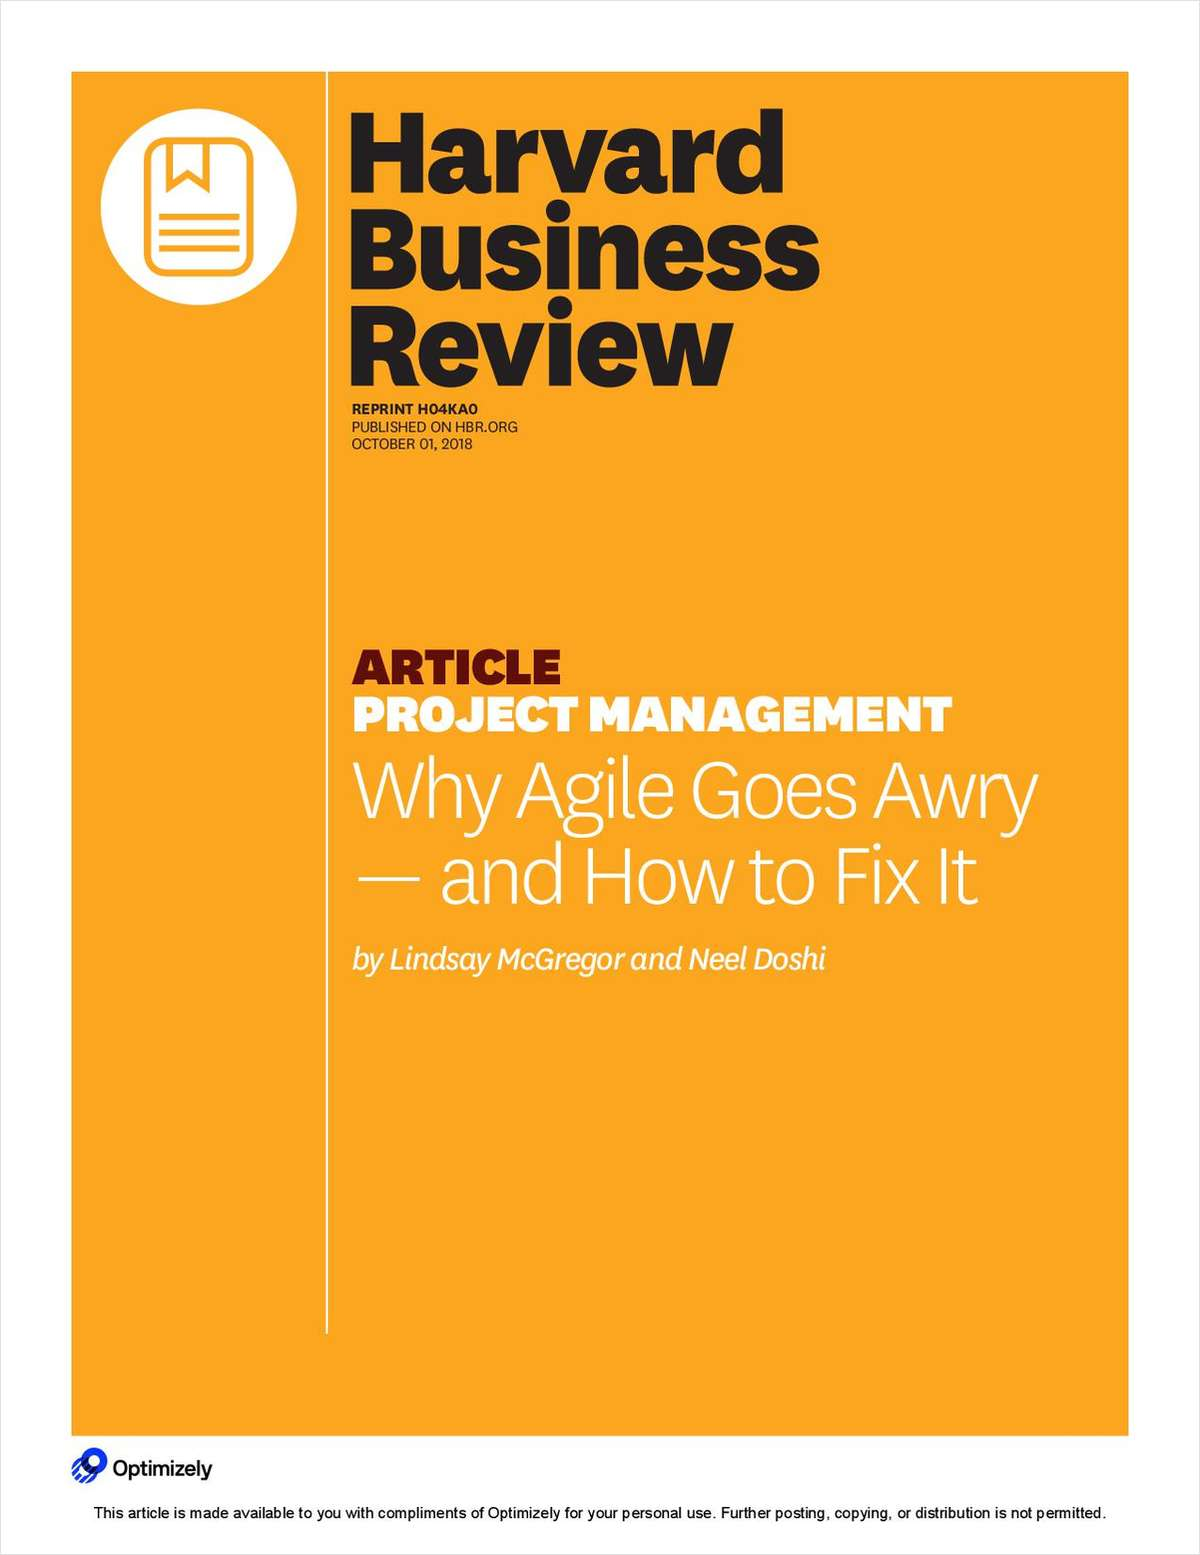 Harvard Business Review: Why Agile Goes Awry & How to Fix it